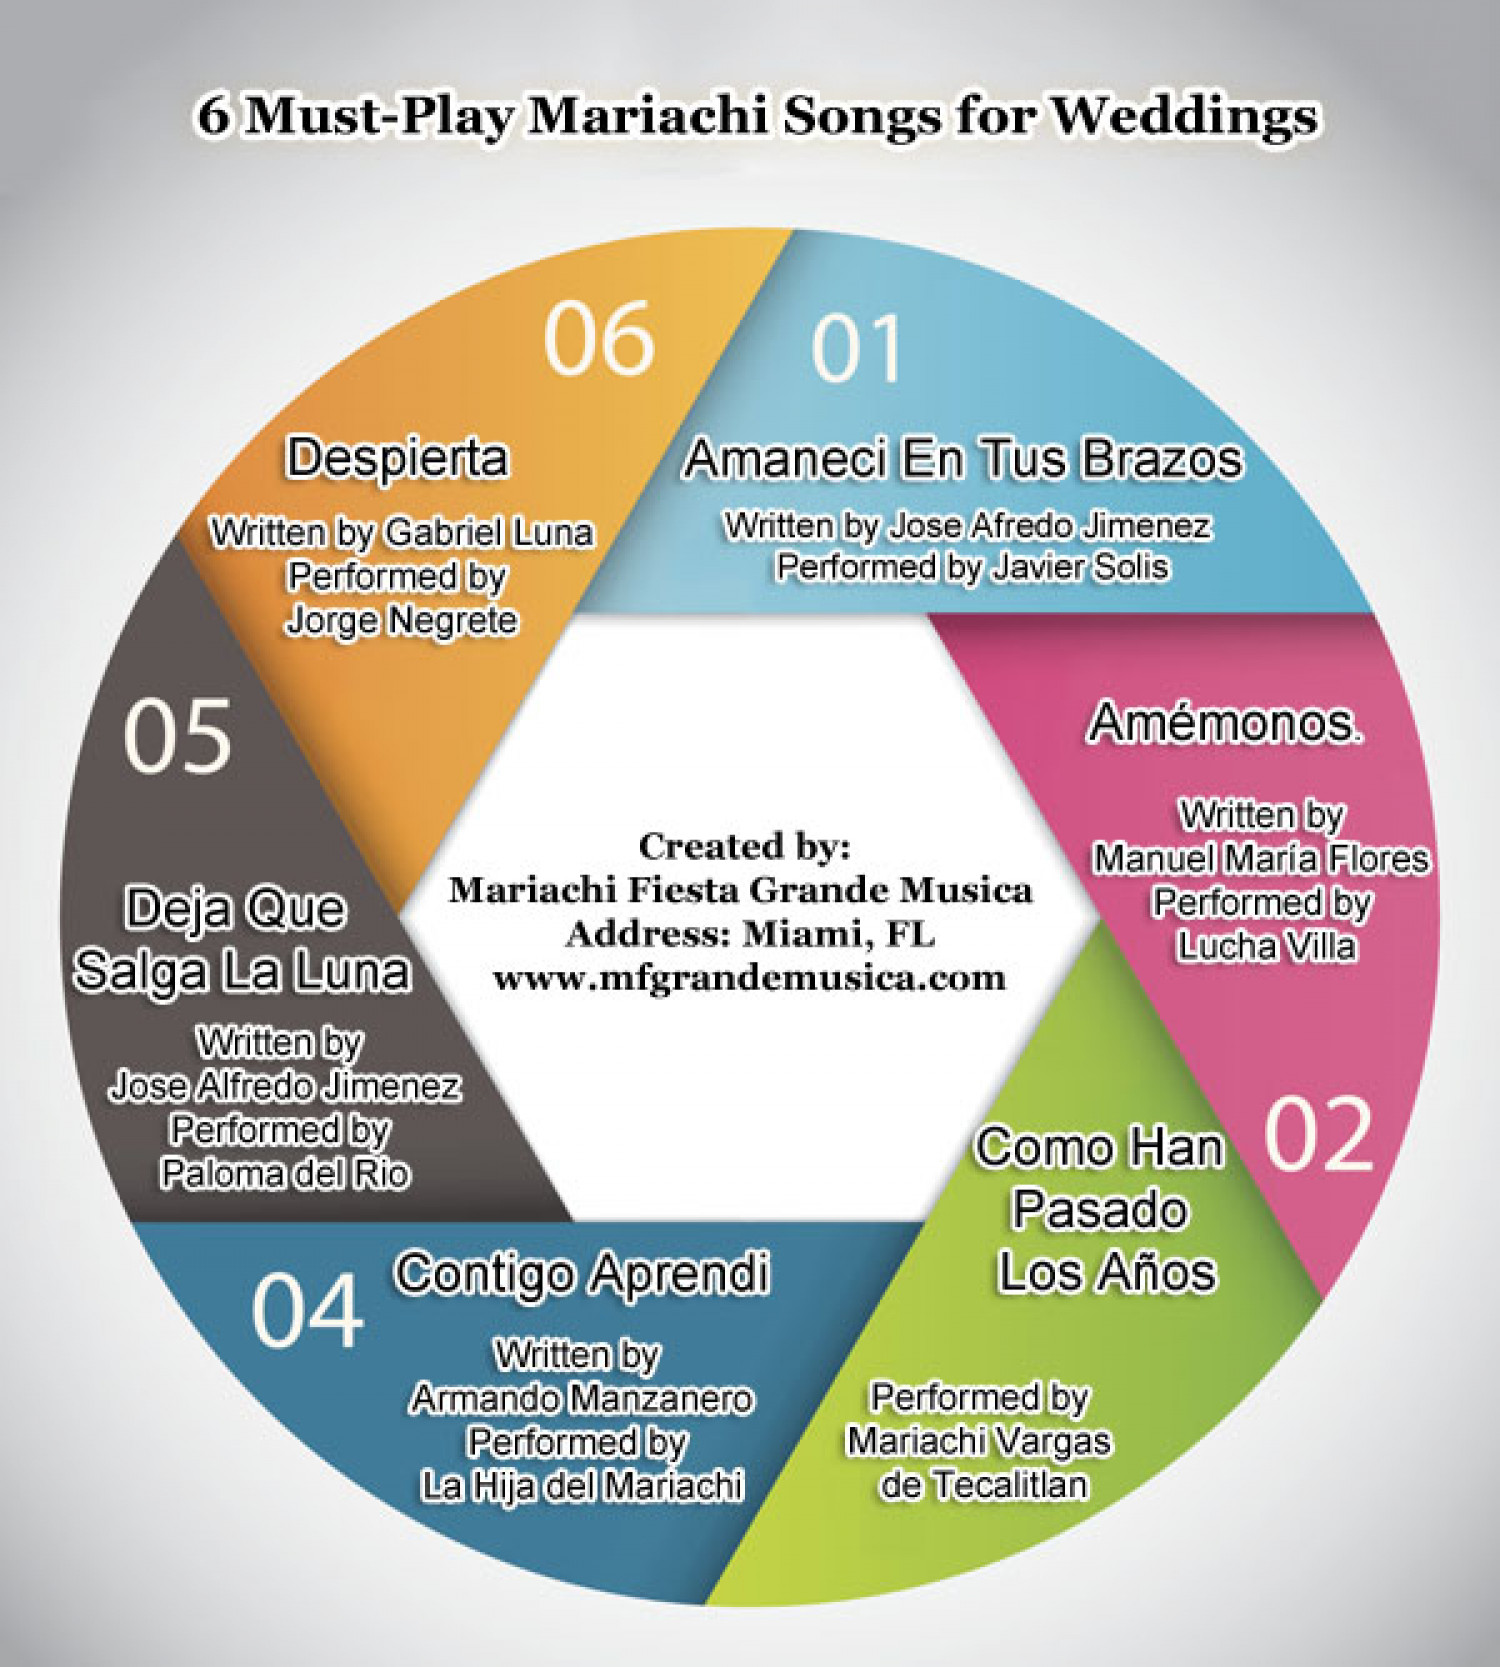 6 Must-Play Mariachi Songs for Weddings | Visual.ly